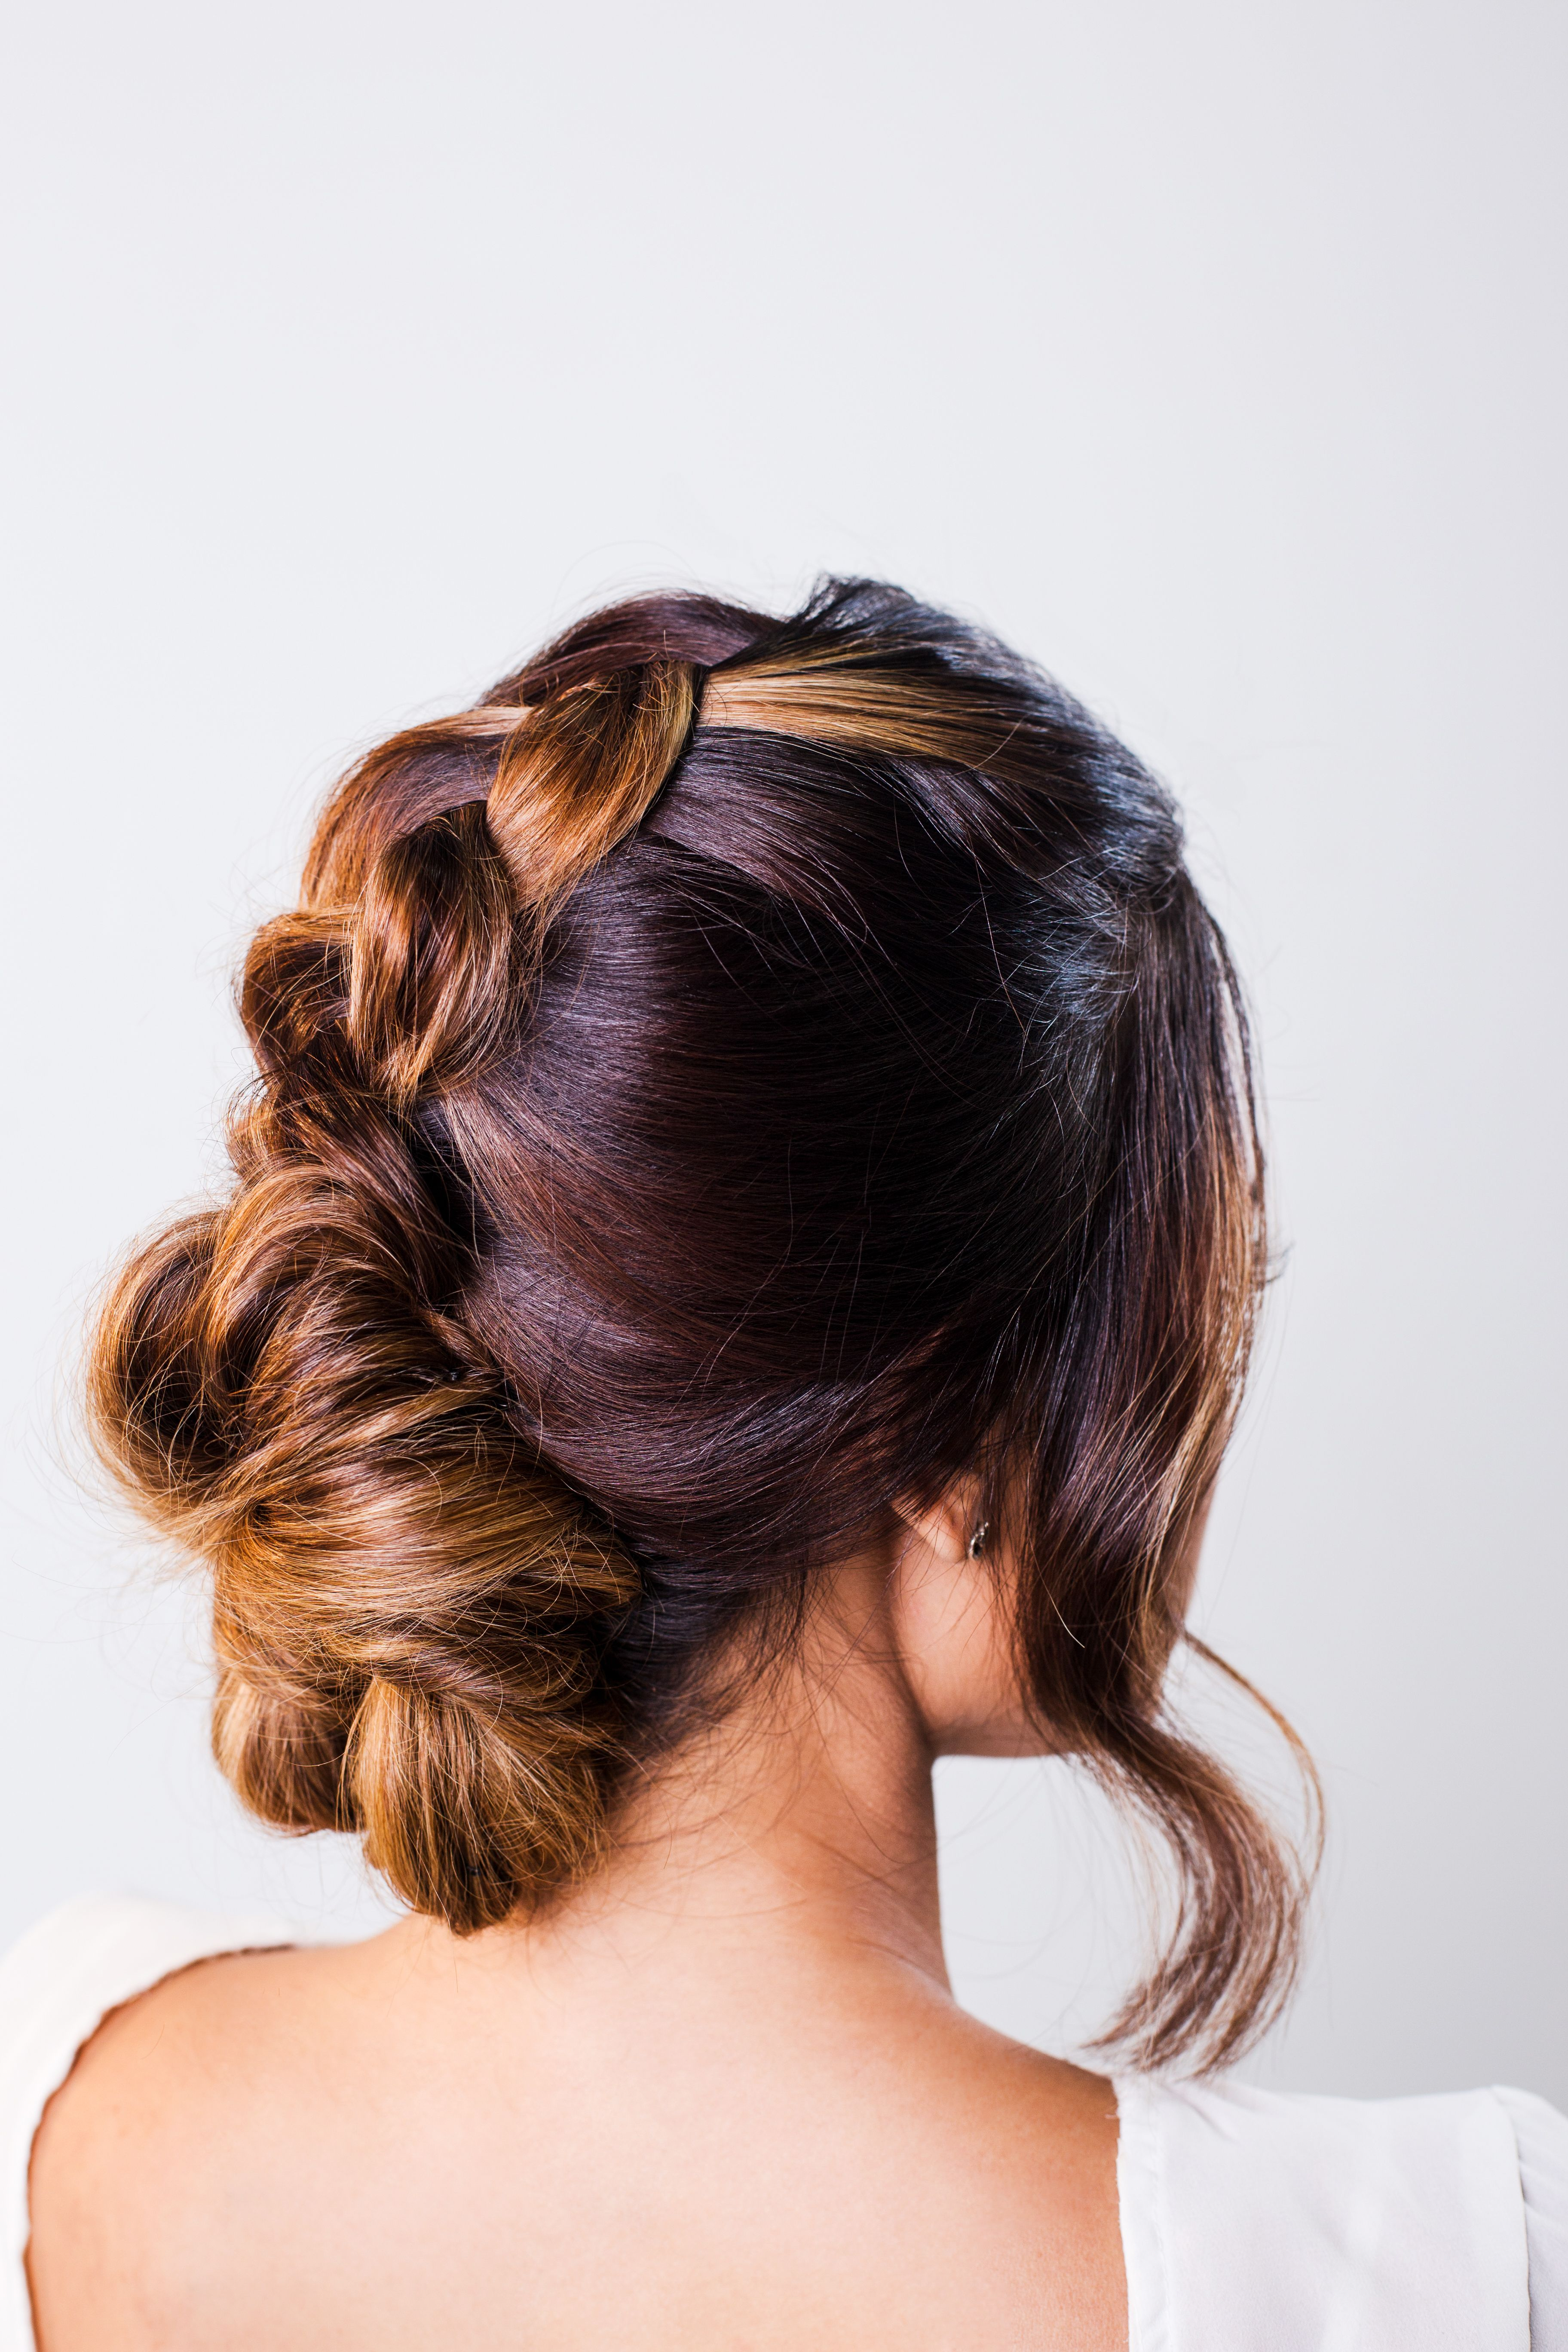 Pin on Hairstyles and Services